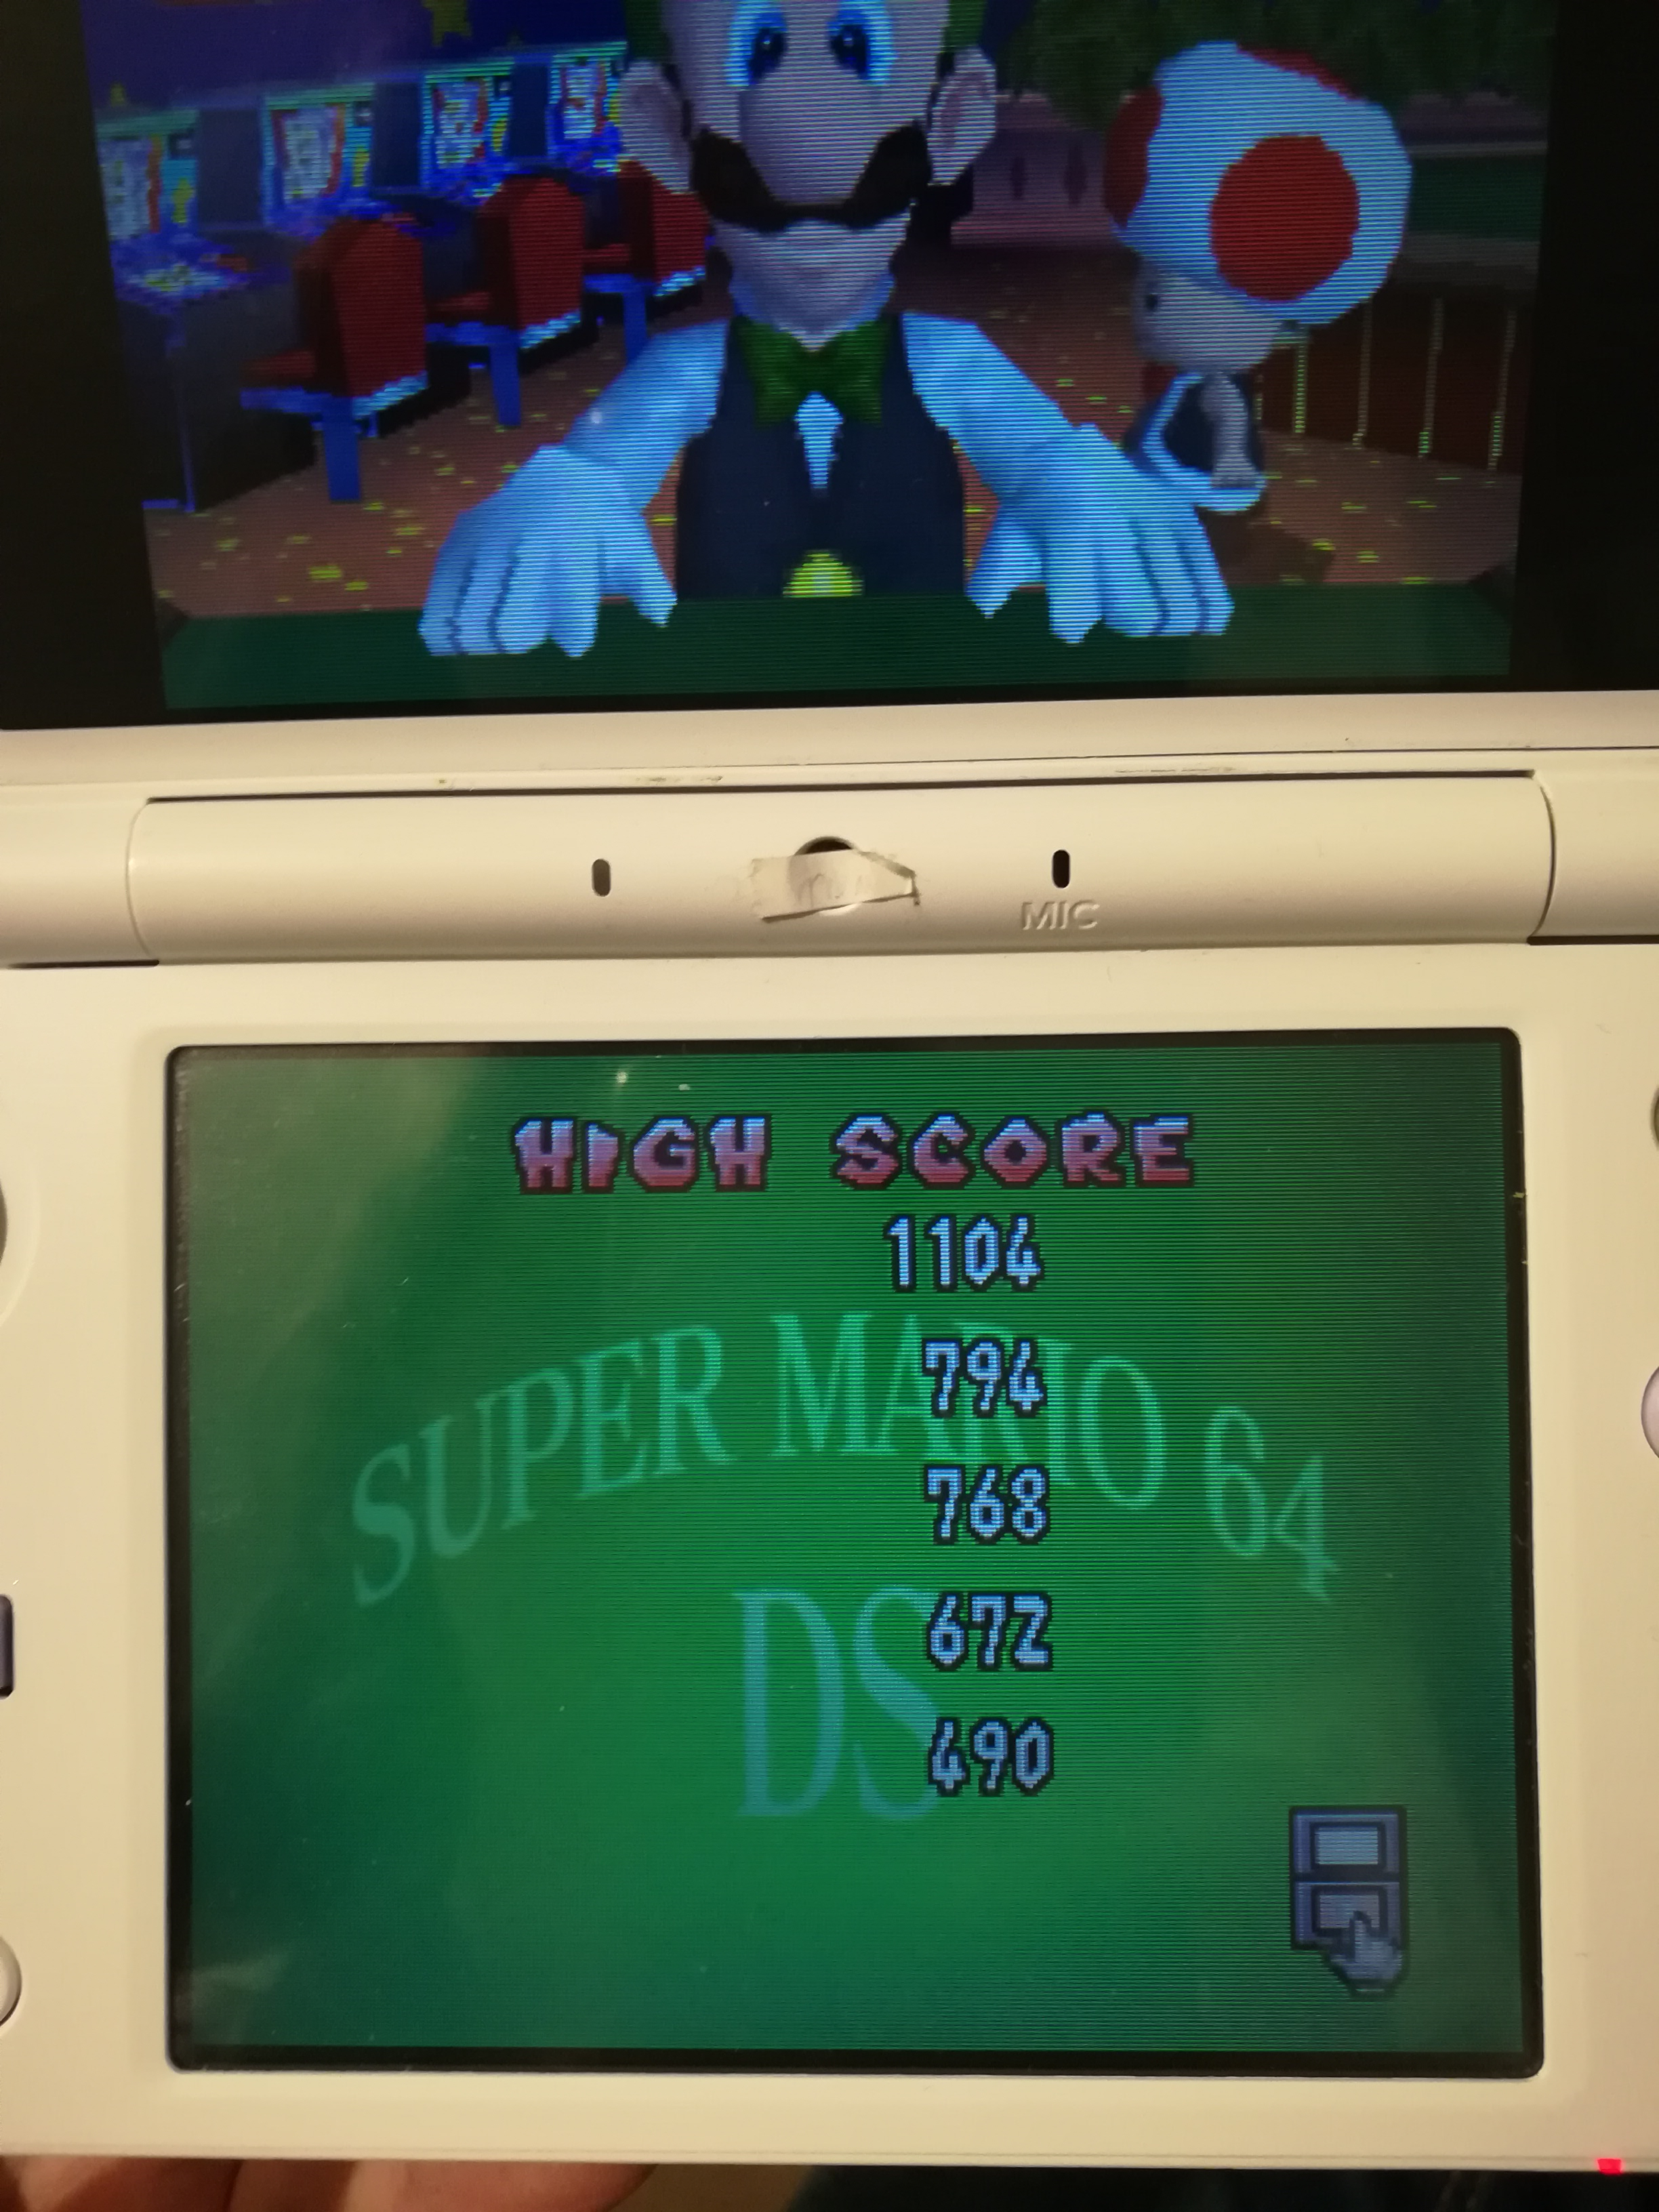 Super Mario 64 DS: Pair-a-Gone and On 1,104 points